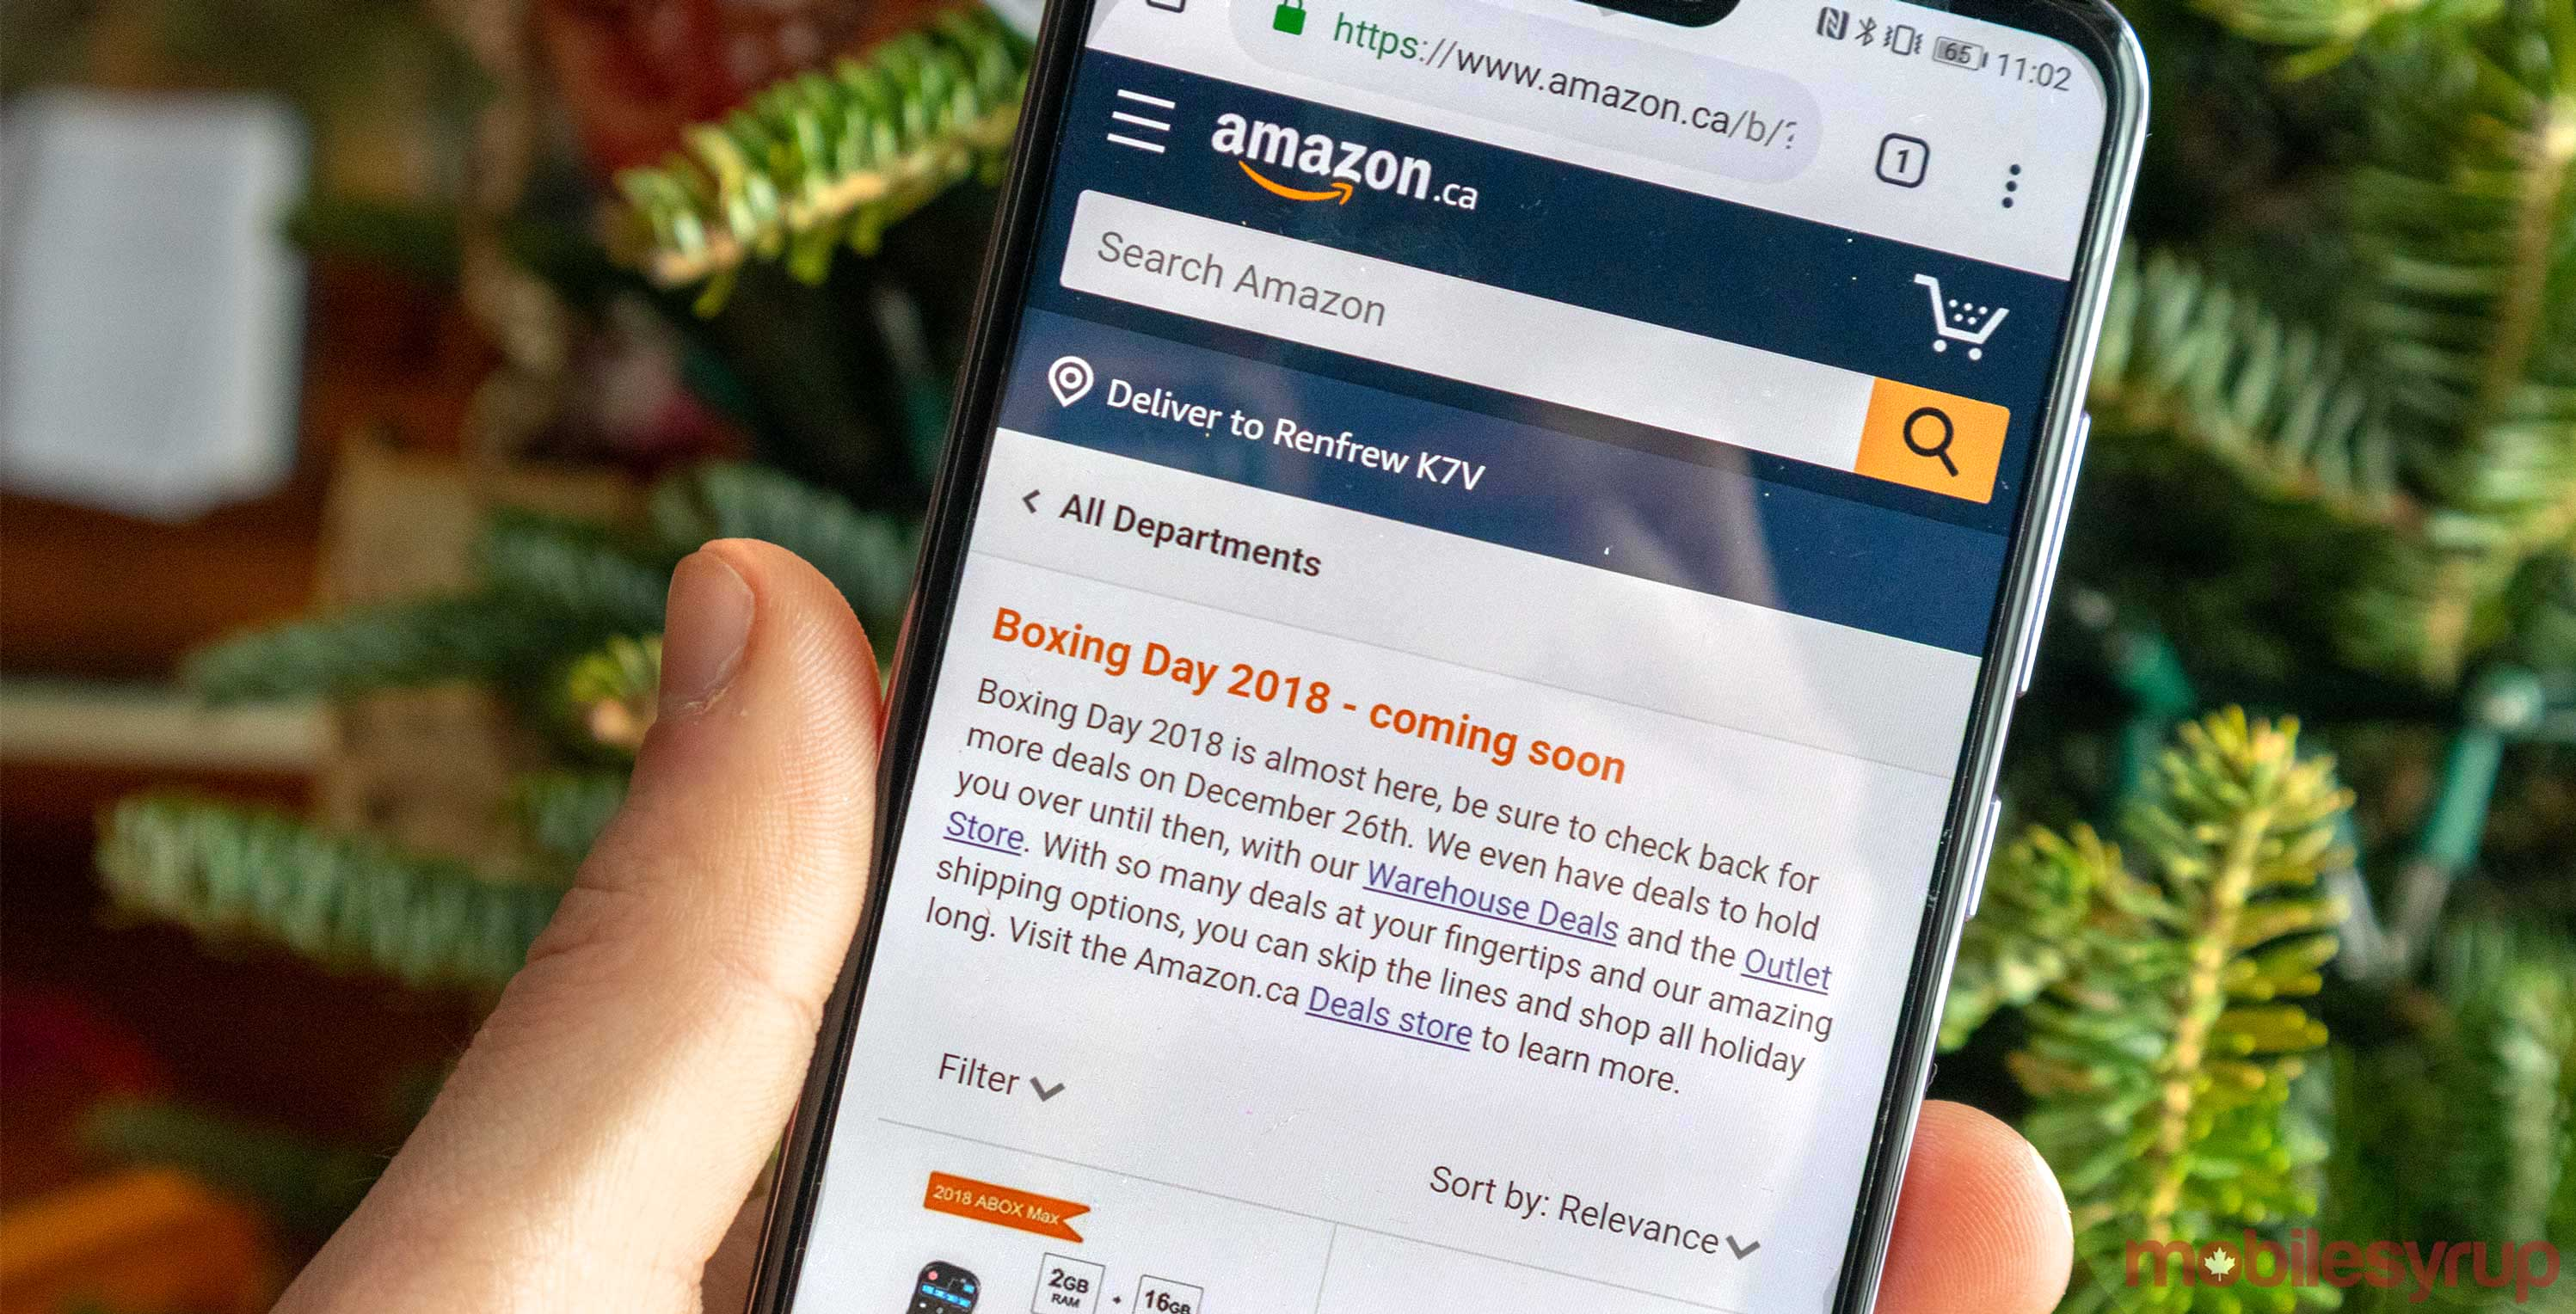 Amazon Canada Gives A Sneak Peek At Boxing Day Deals Mobilesyrup